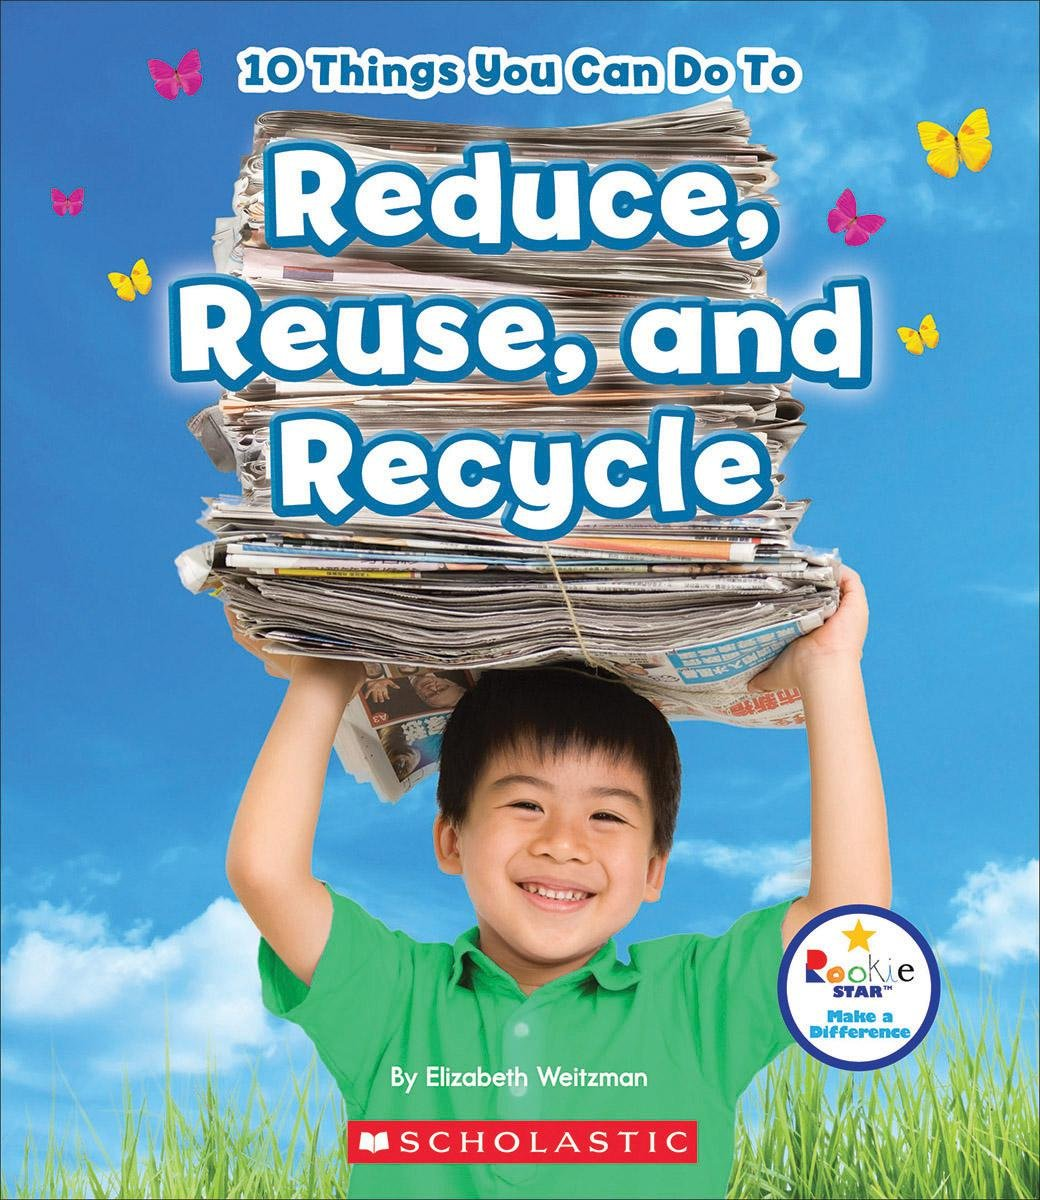 Download 10 Things You Can Do to Reduce, Reuse, Recycle (Rookie Star: Make a Difference) ebook